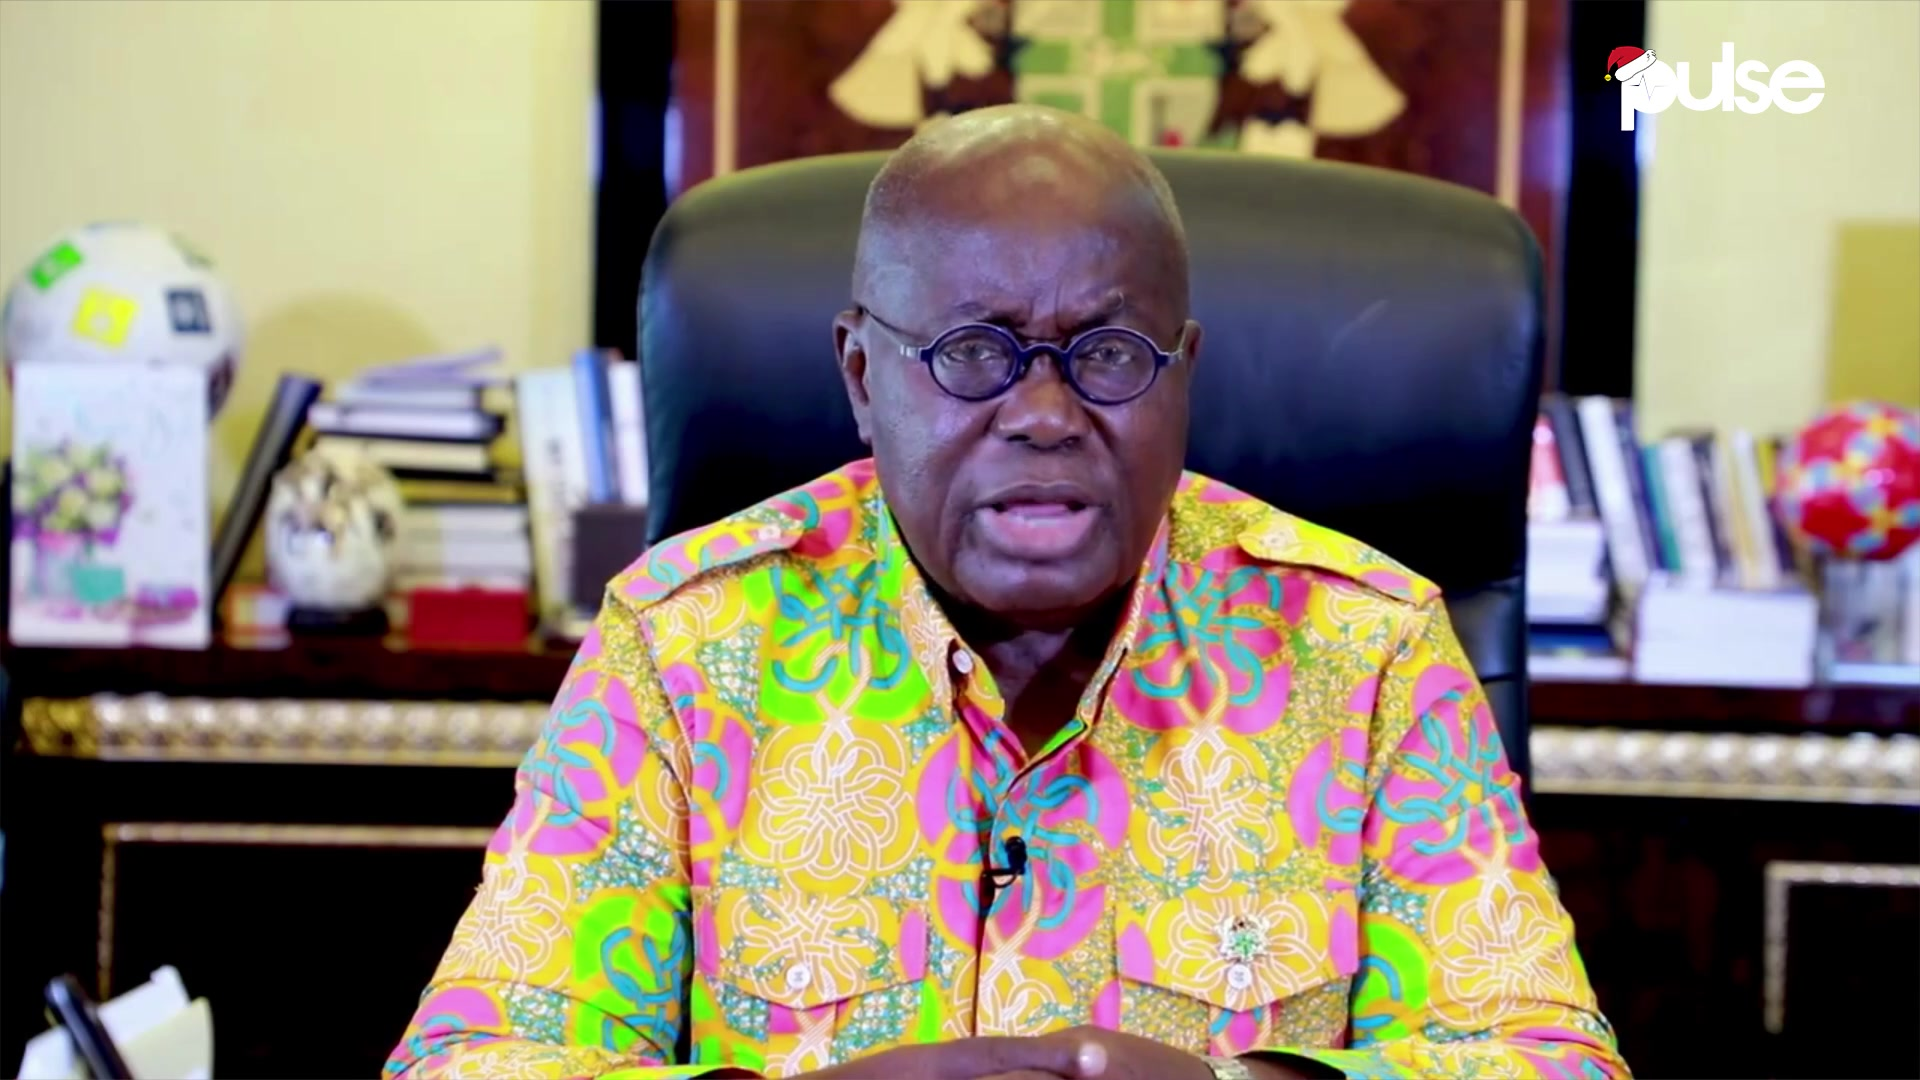 COVID-19: Parties, funerals, weddings banned – Akufo-Addo announces